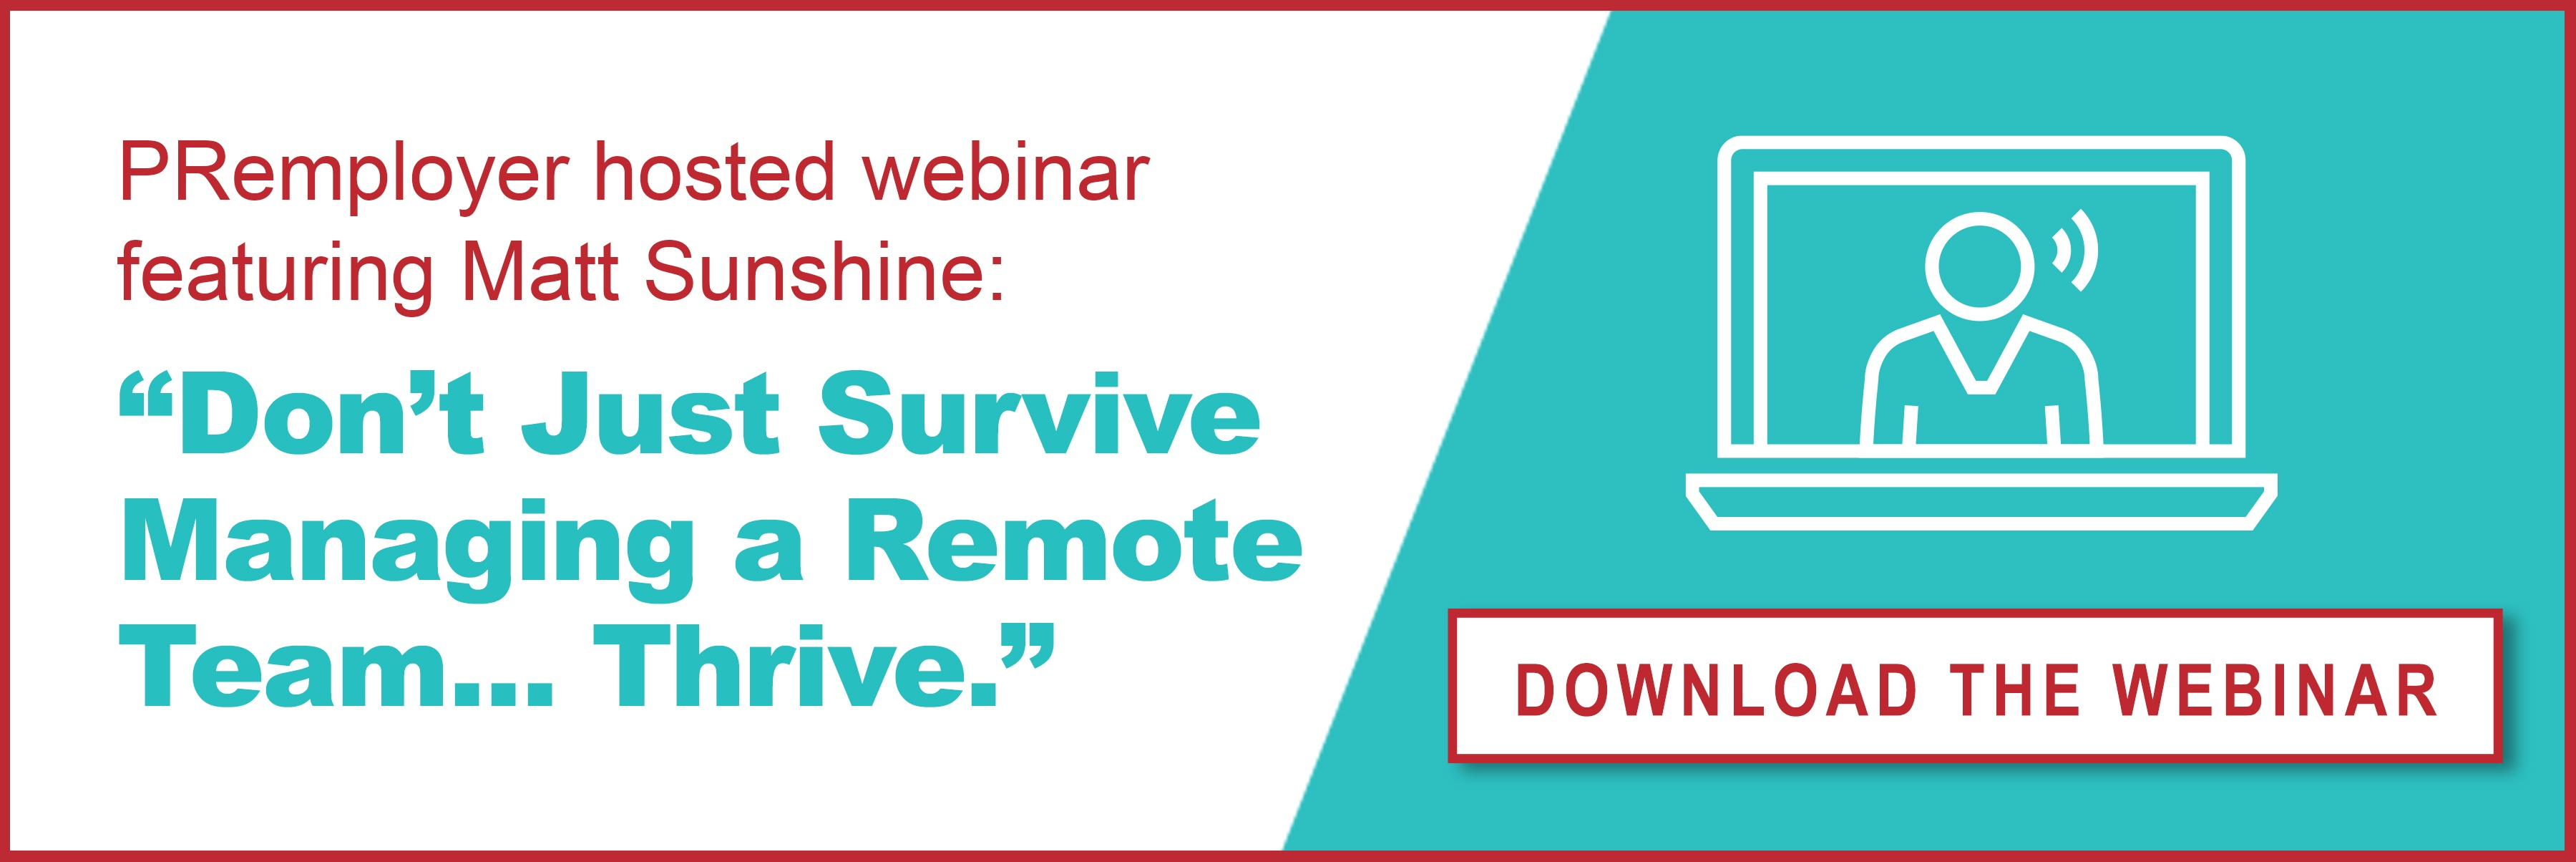 Don't Just Survive Managing a Remote Team... Thrive